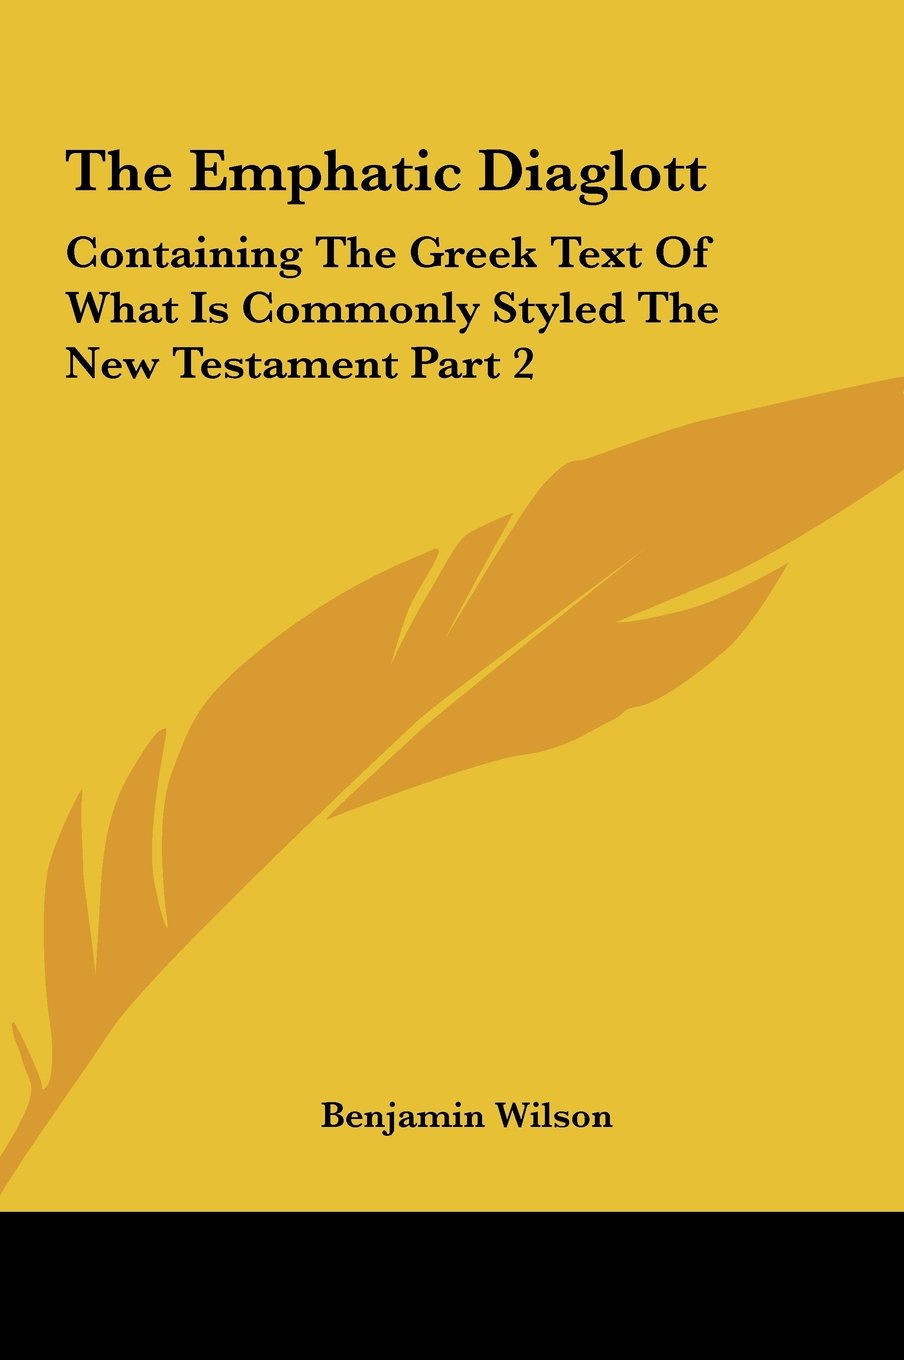 Download The Emphatic Diaglott: Containing The Greek Text Of What Is Commonly Styled The New Testament Part 2 ebook